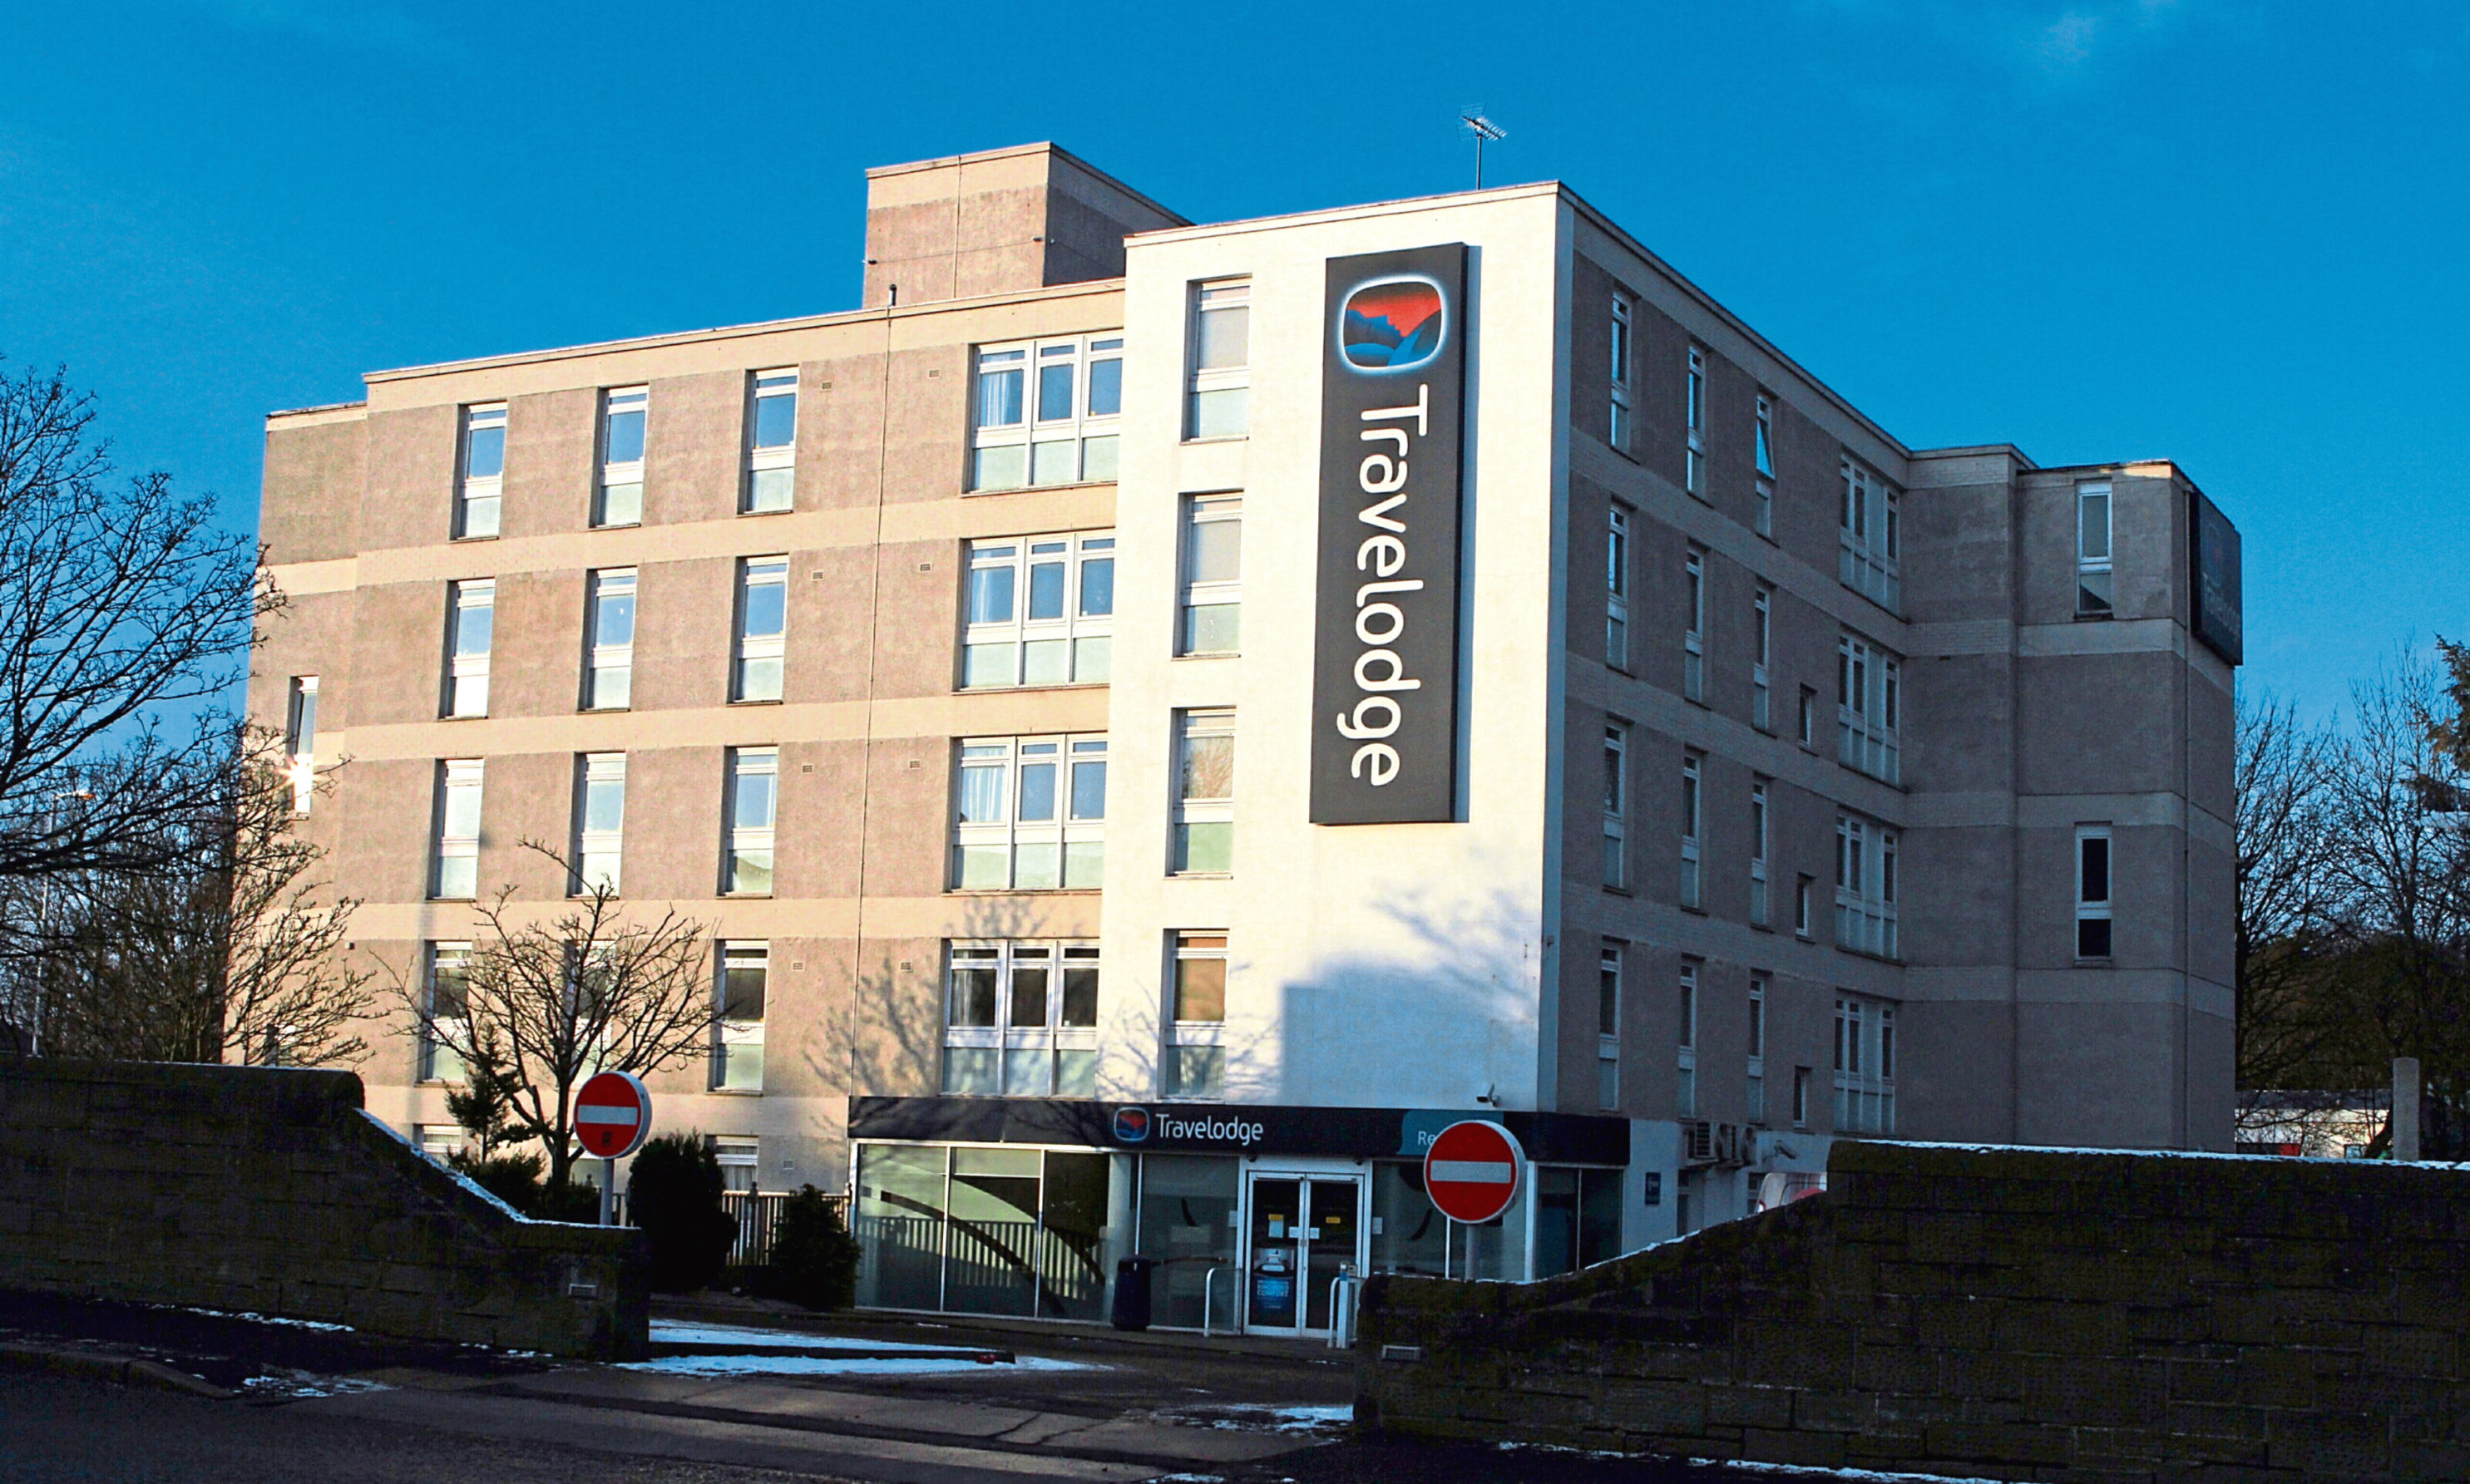 Travelodge, Strathmore Avenue, Dundee.